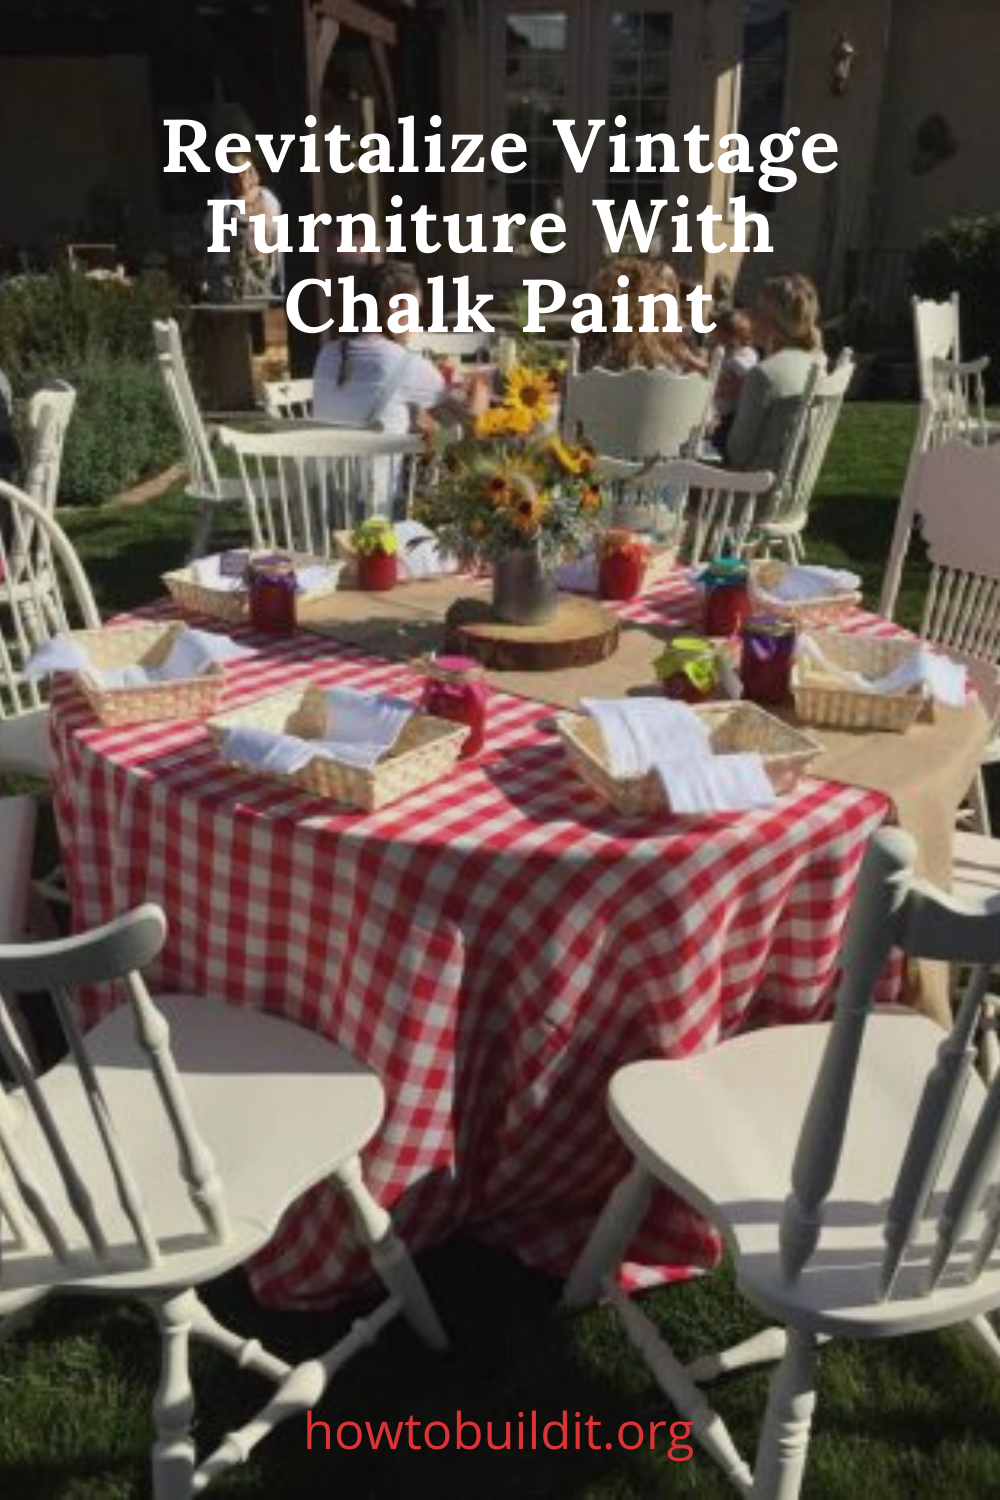 I love painted vintage furniture. I've collected many pieces over the years and vitalized them with chalk paint. I love the look. It's charming and cozy. Chalk paint makes transforming furniture easy to to all the color available, and it's an easy DIY project. Read the post for an easy chalk paint tutorial #DIYprojects #transformation #paintedfurniture #chalkpaintideas